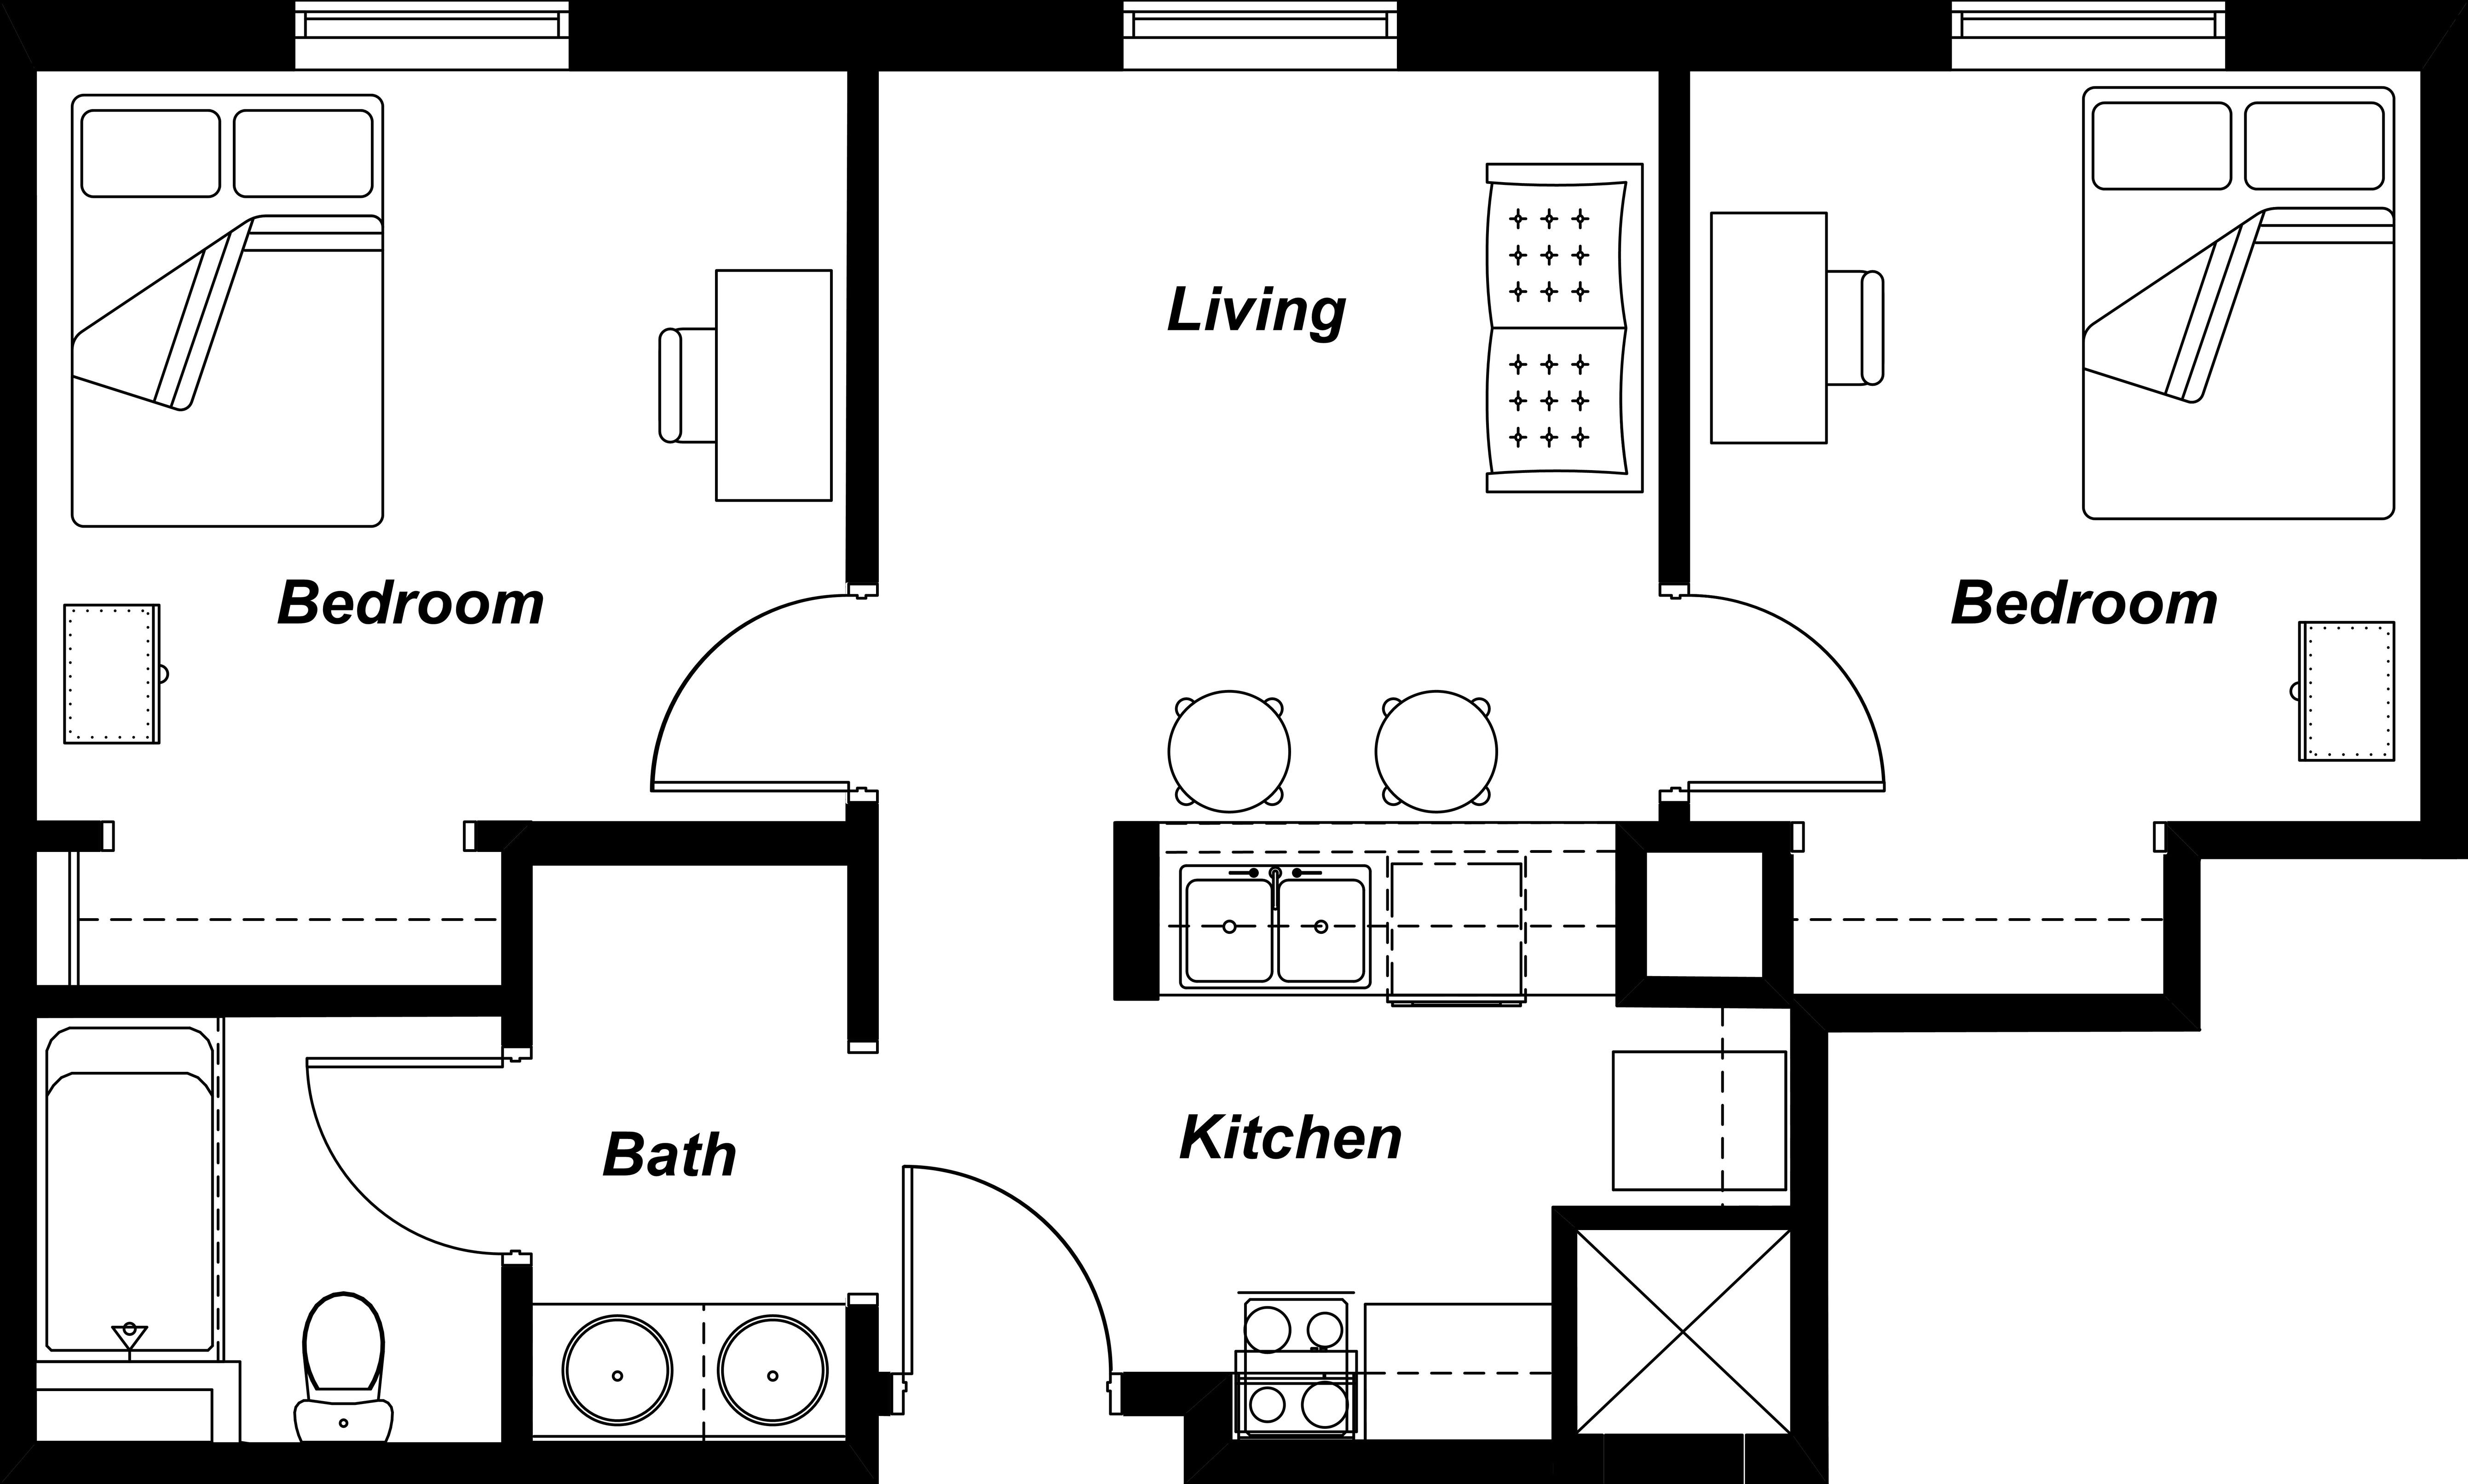 residential floor plans perfect home design ideas with